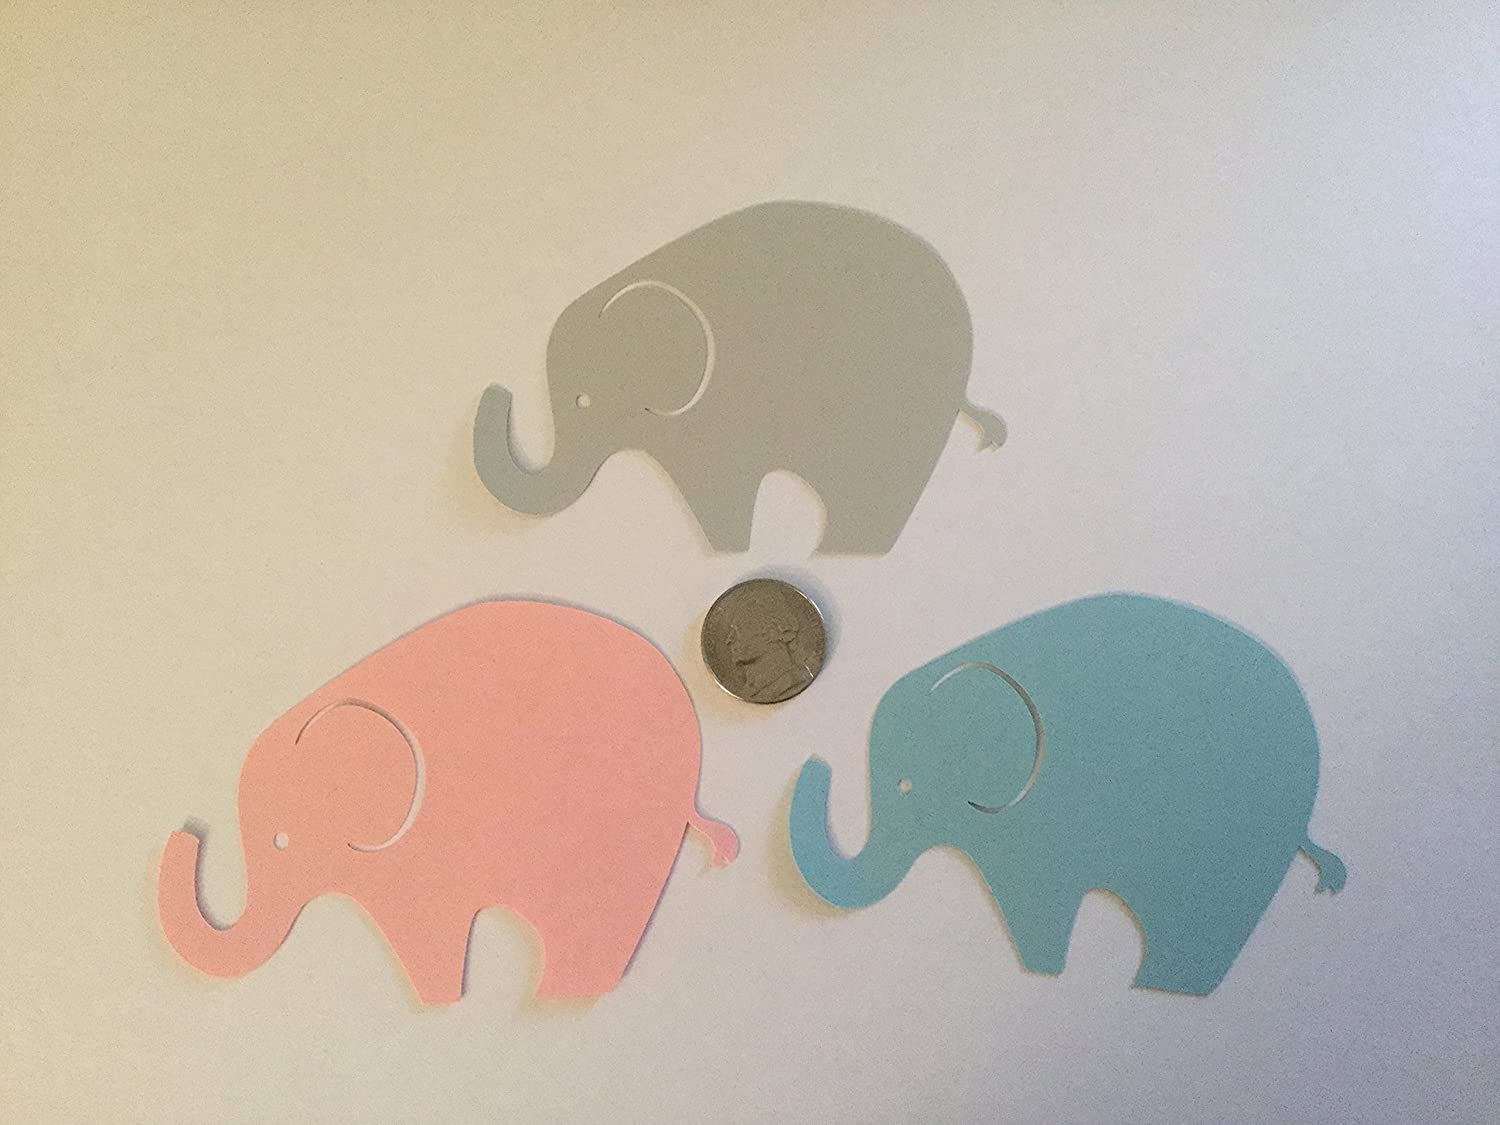 24 Light Gray Pink Blue Elephant Cutout 3 3//4 Inch Elephant Cut Outs Large Elephant Diecut Elephant Baby Shower Elephant Theme Gender Reveal Party